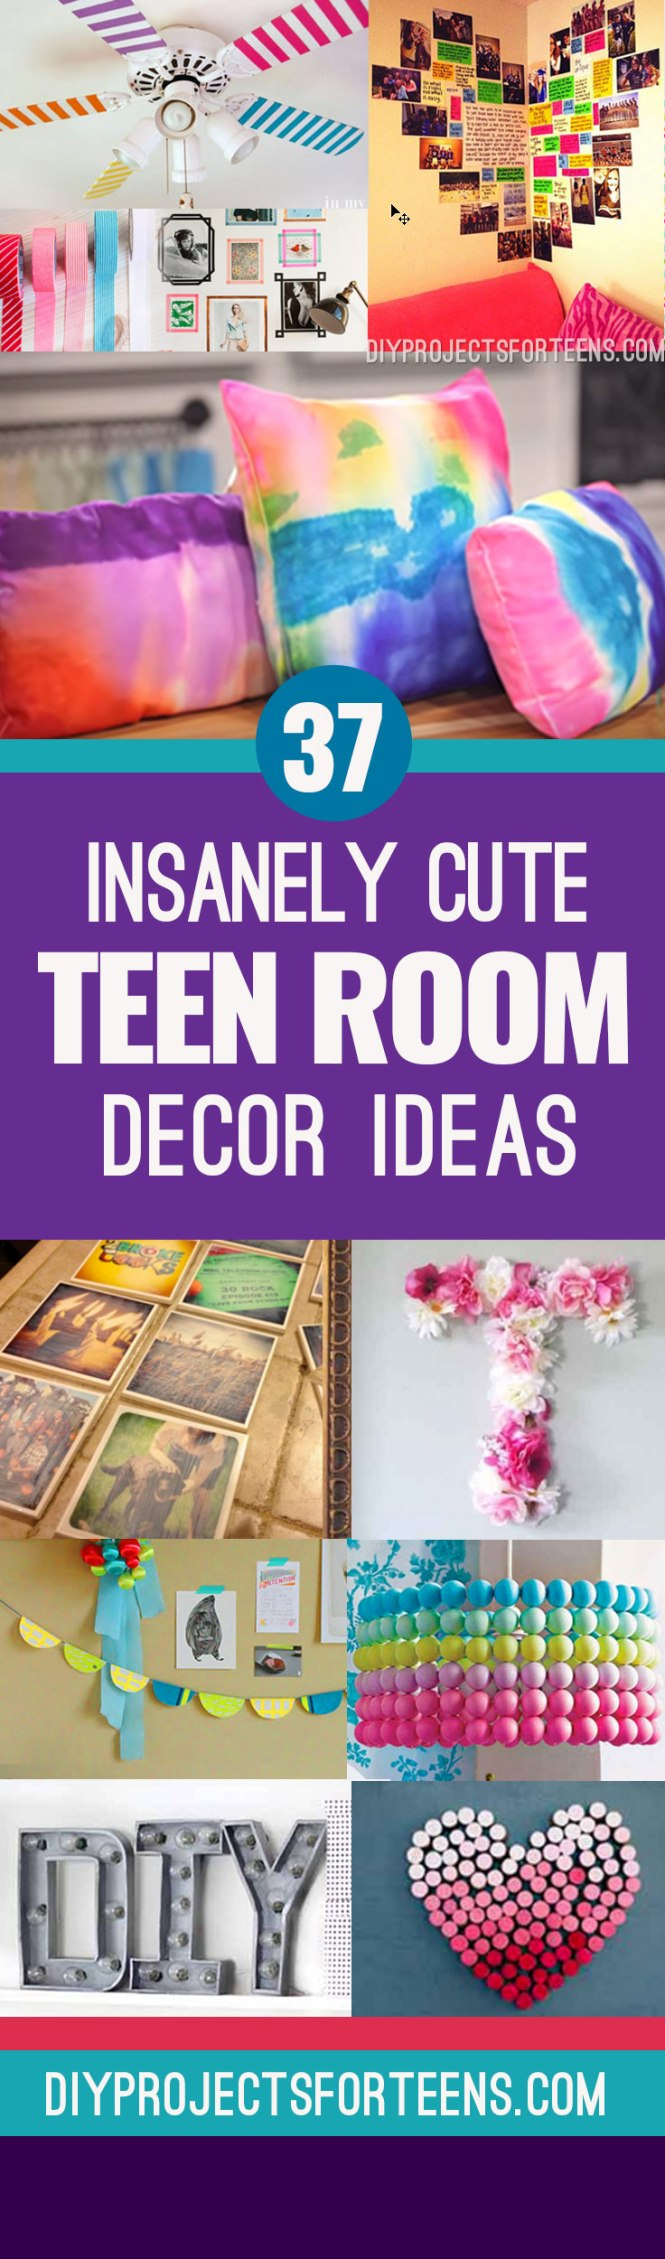 Cute Diy Room Decor Ideas For S Best From Pinterest